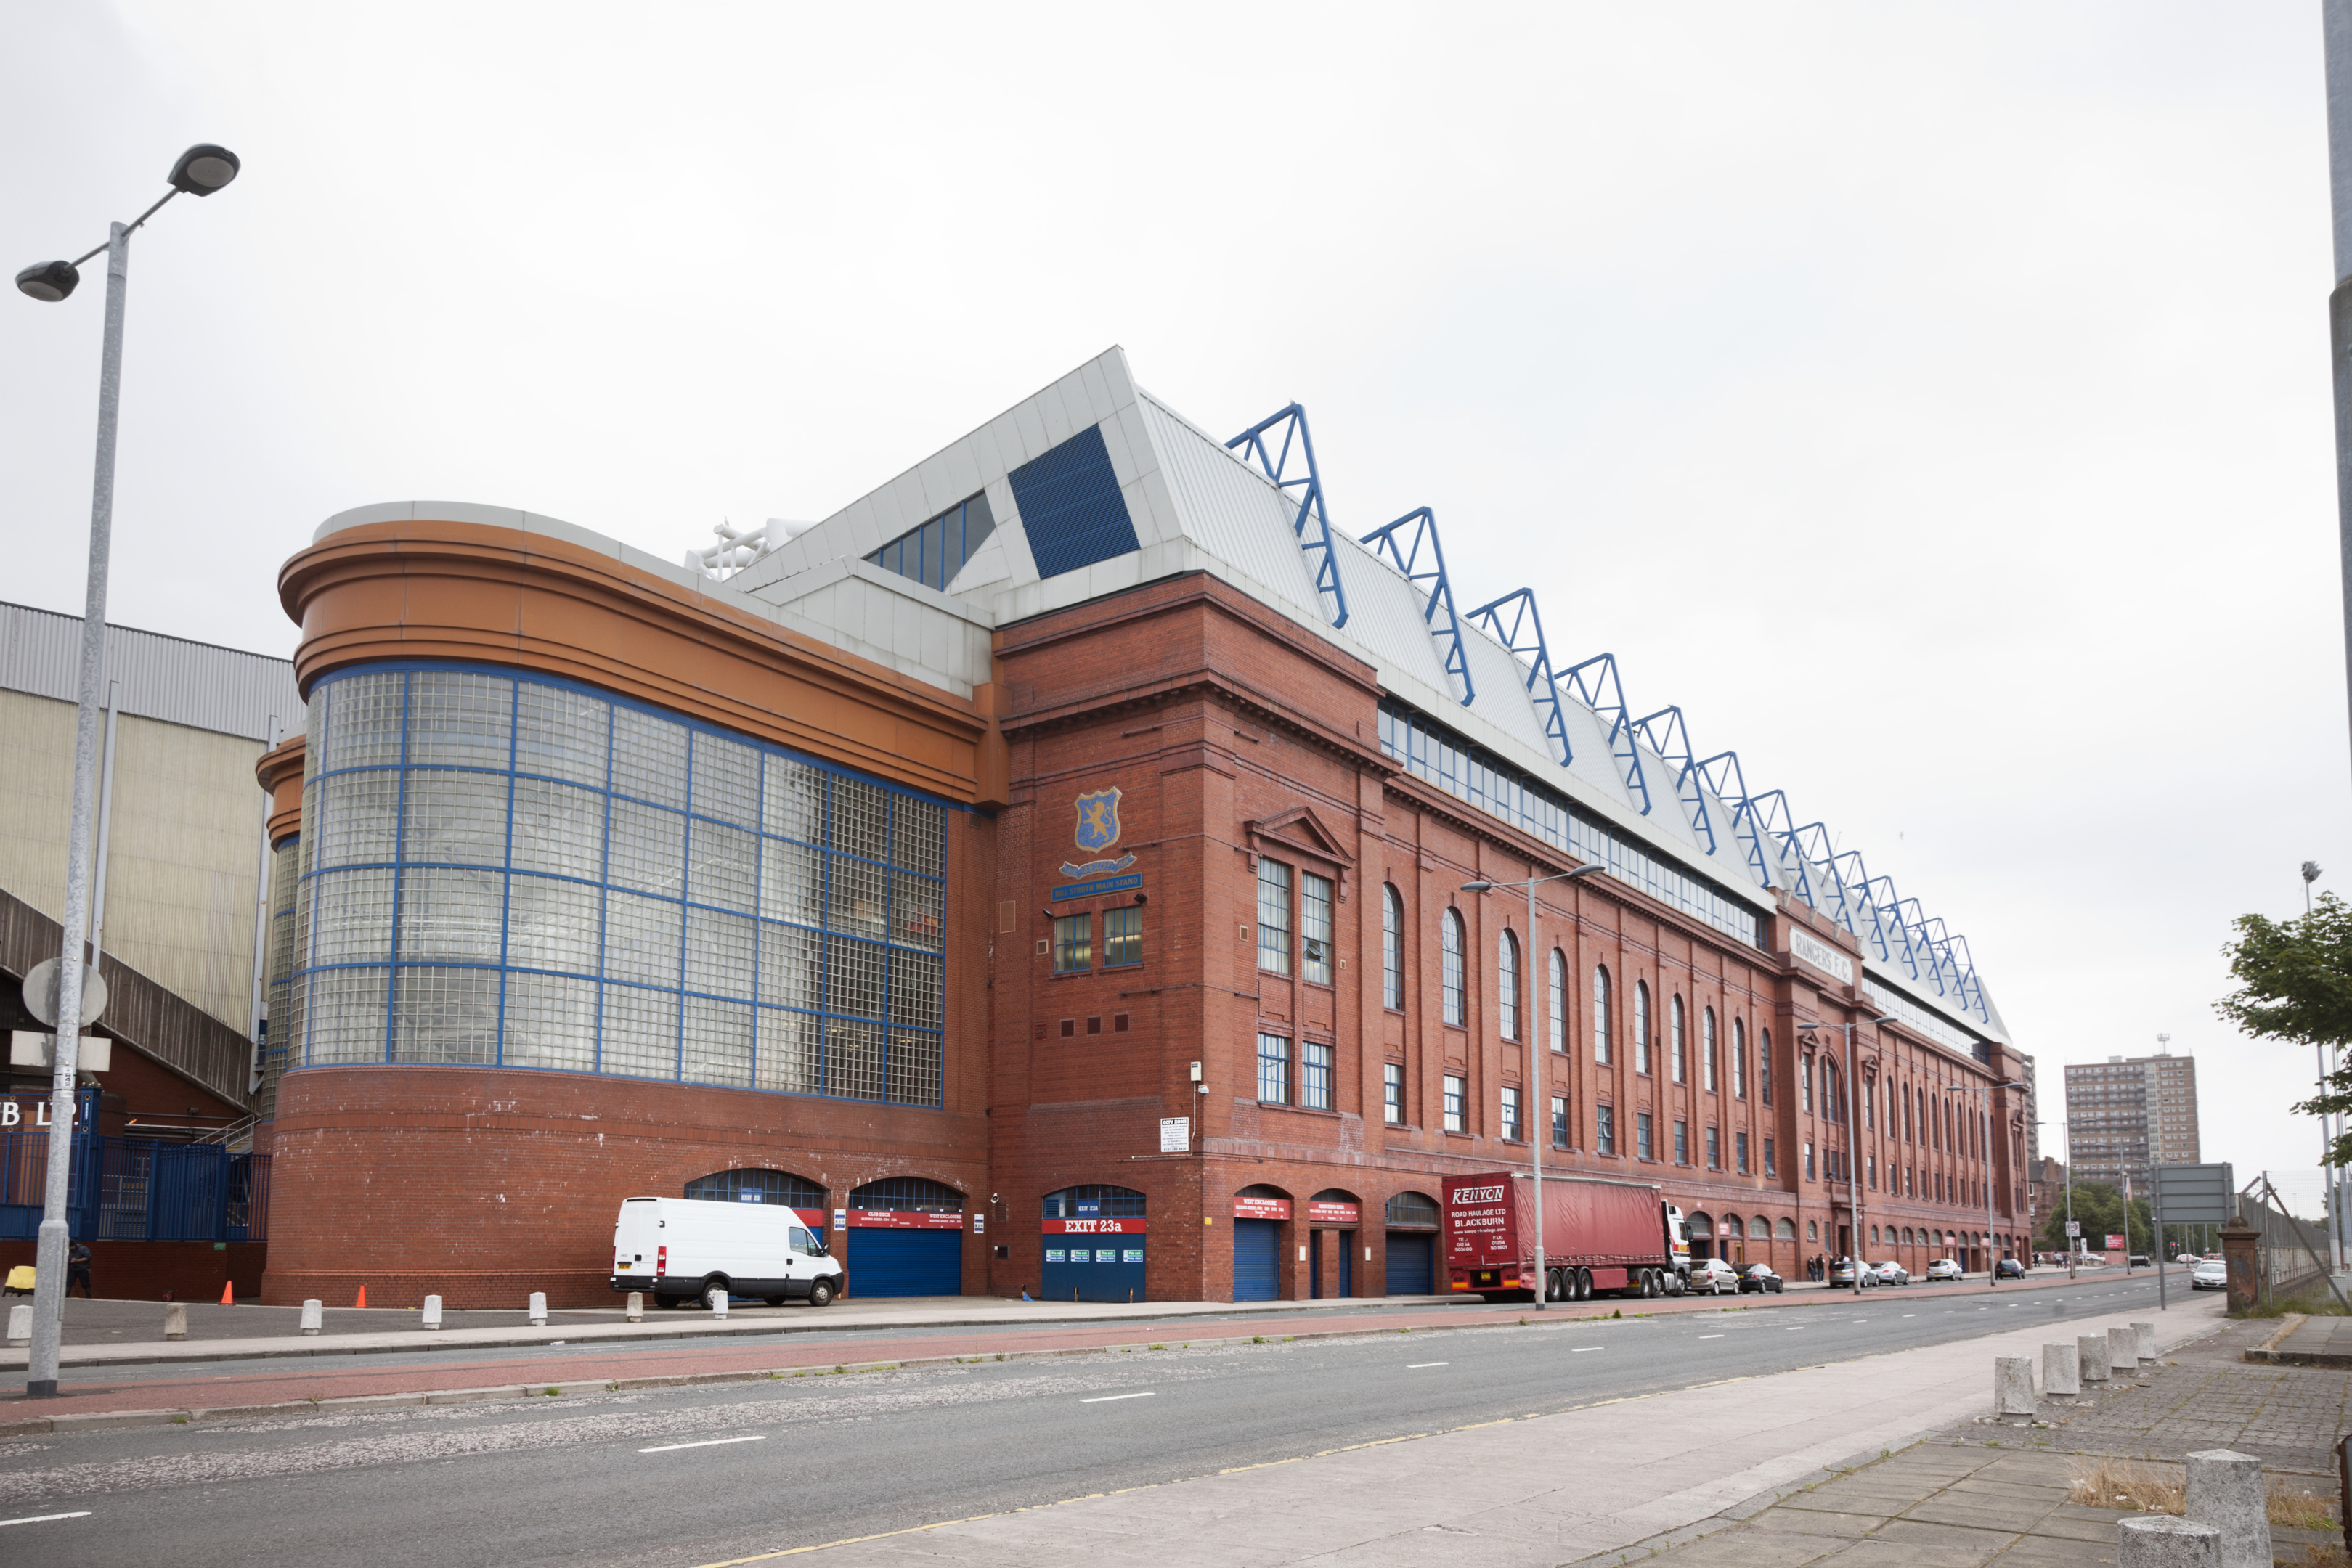 Rangers fans have been told that a safe standing section will not be in place at Ibrox next season (iStock)